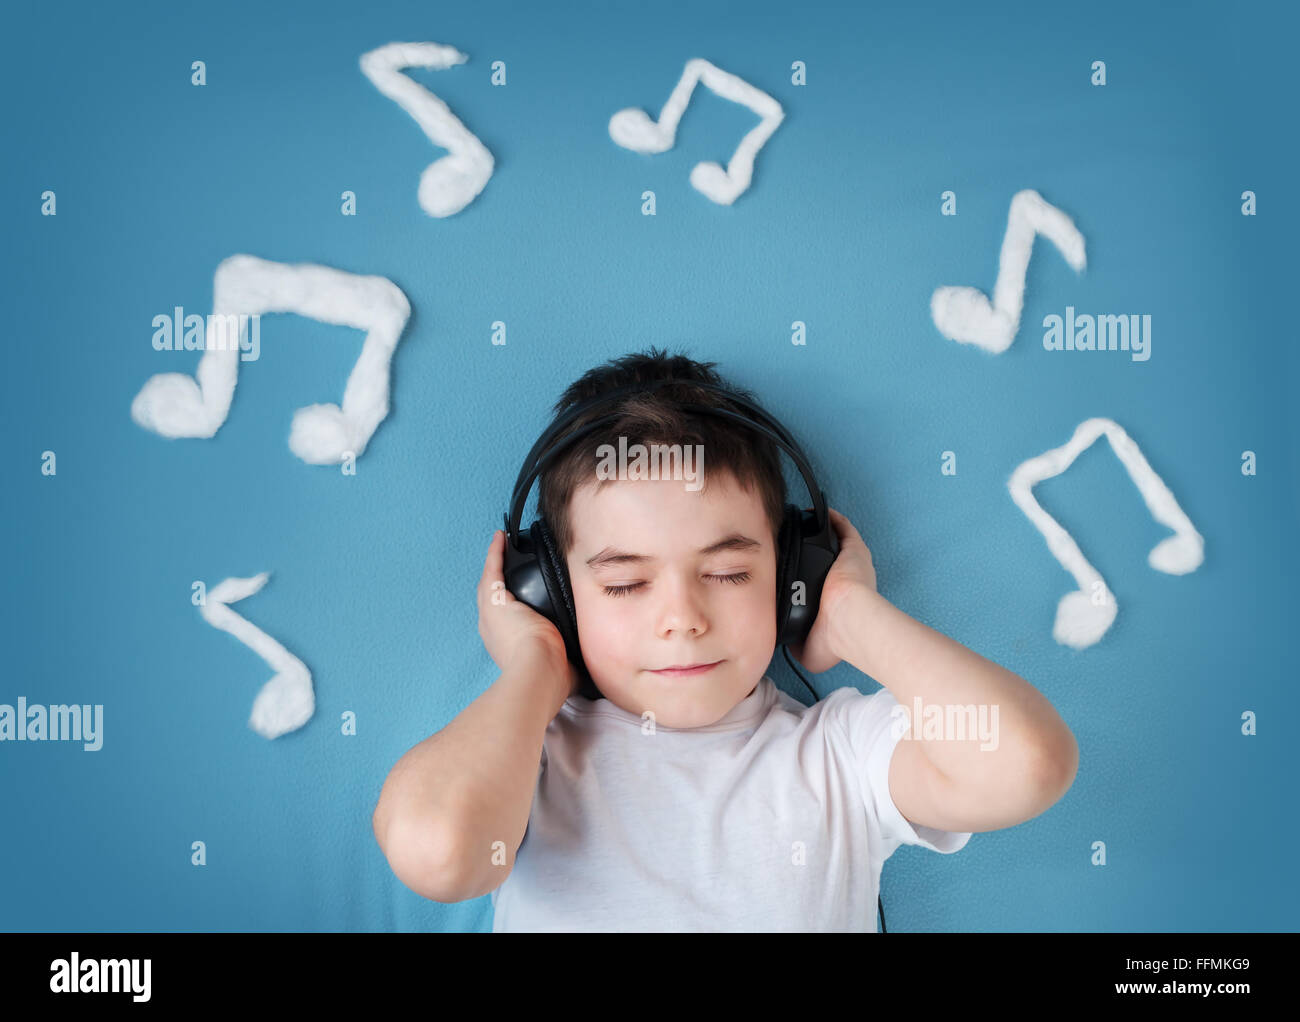 little boy on blue blanket background with headphones Stock Photo